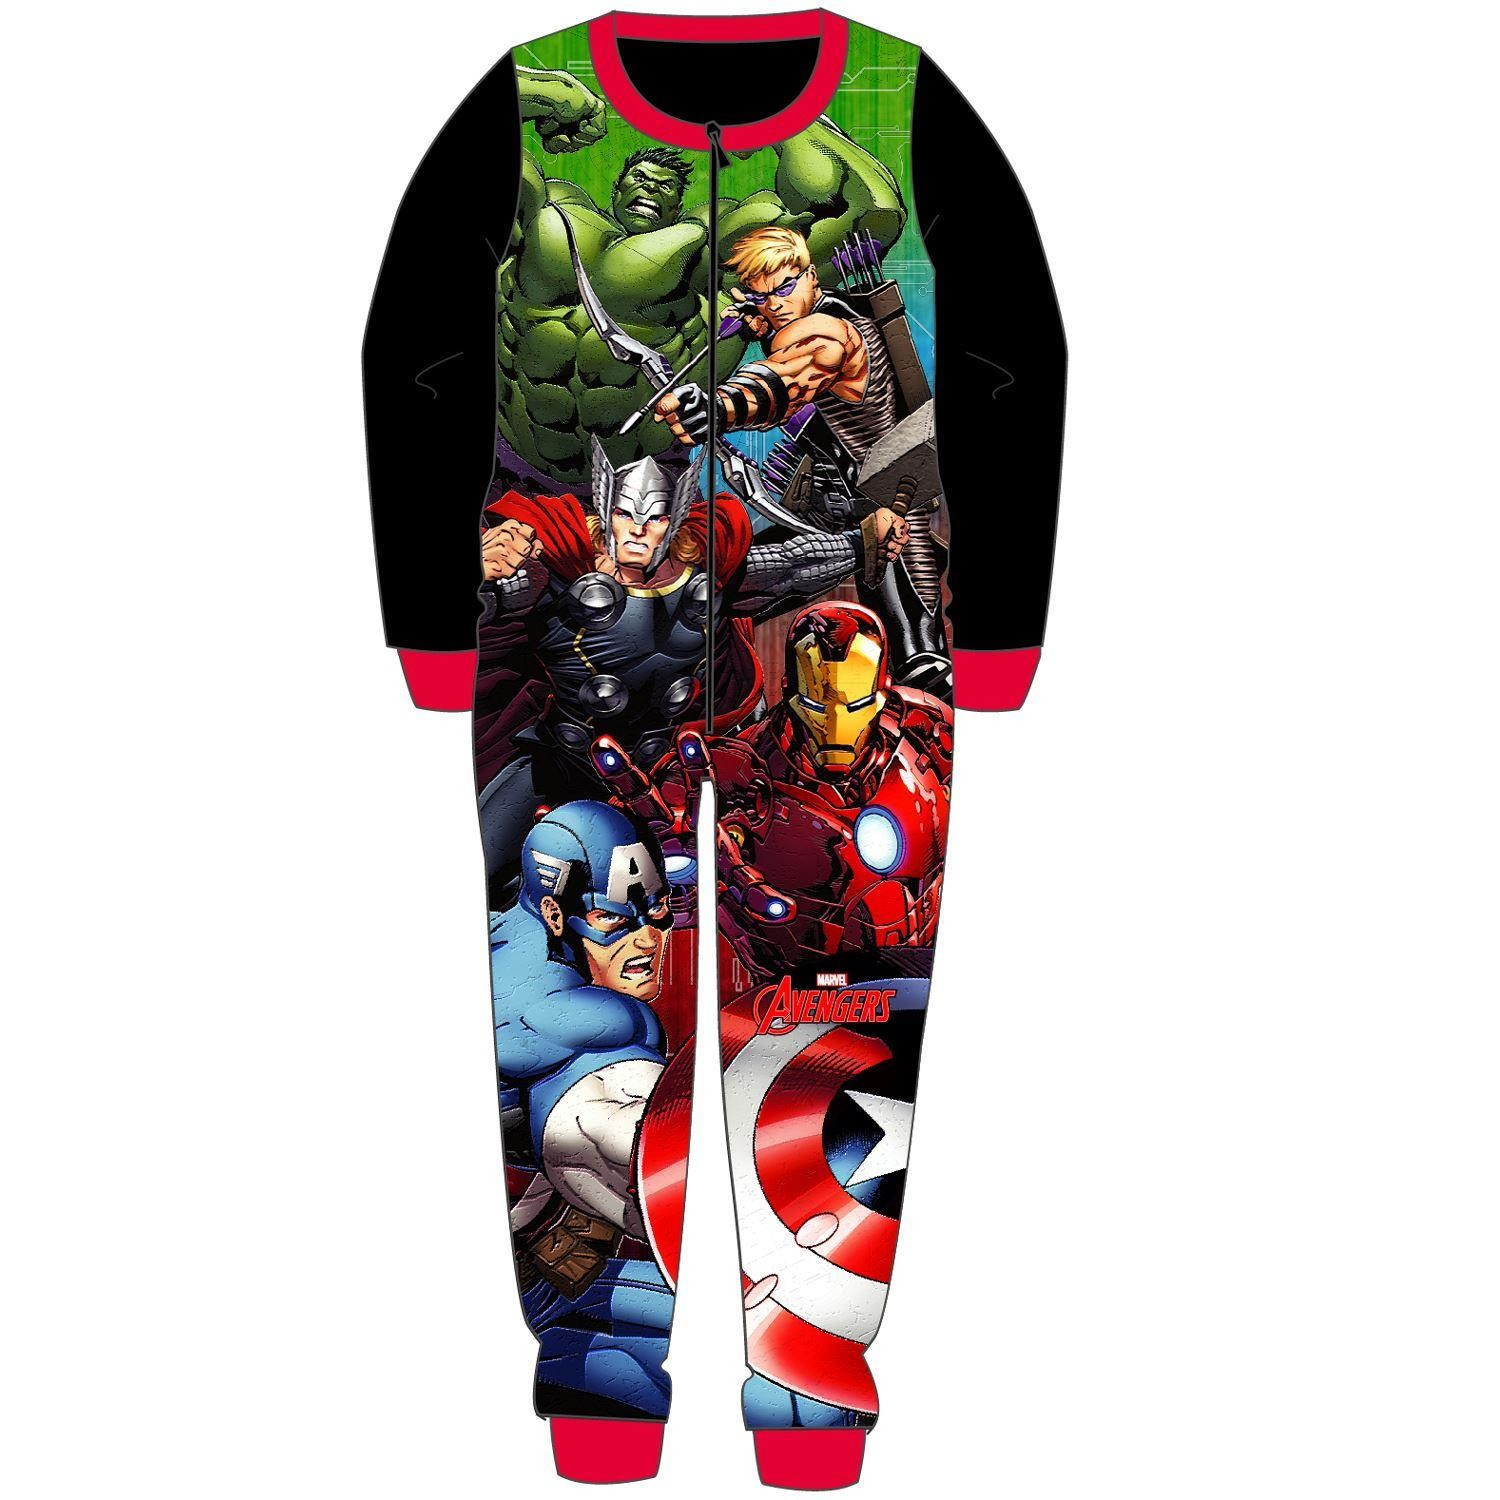 Marvel Avengers Fleece Onesie - Black